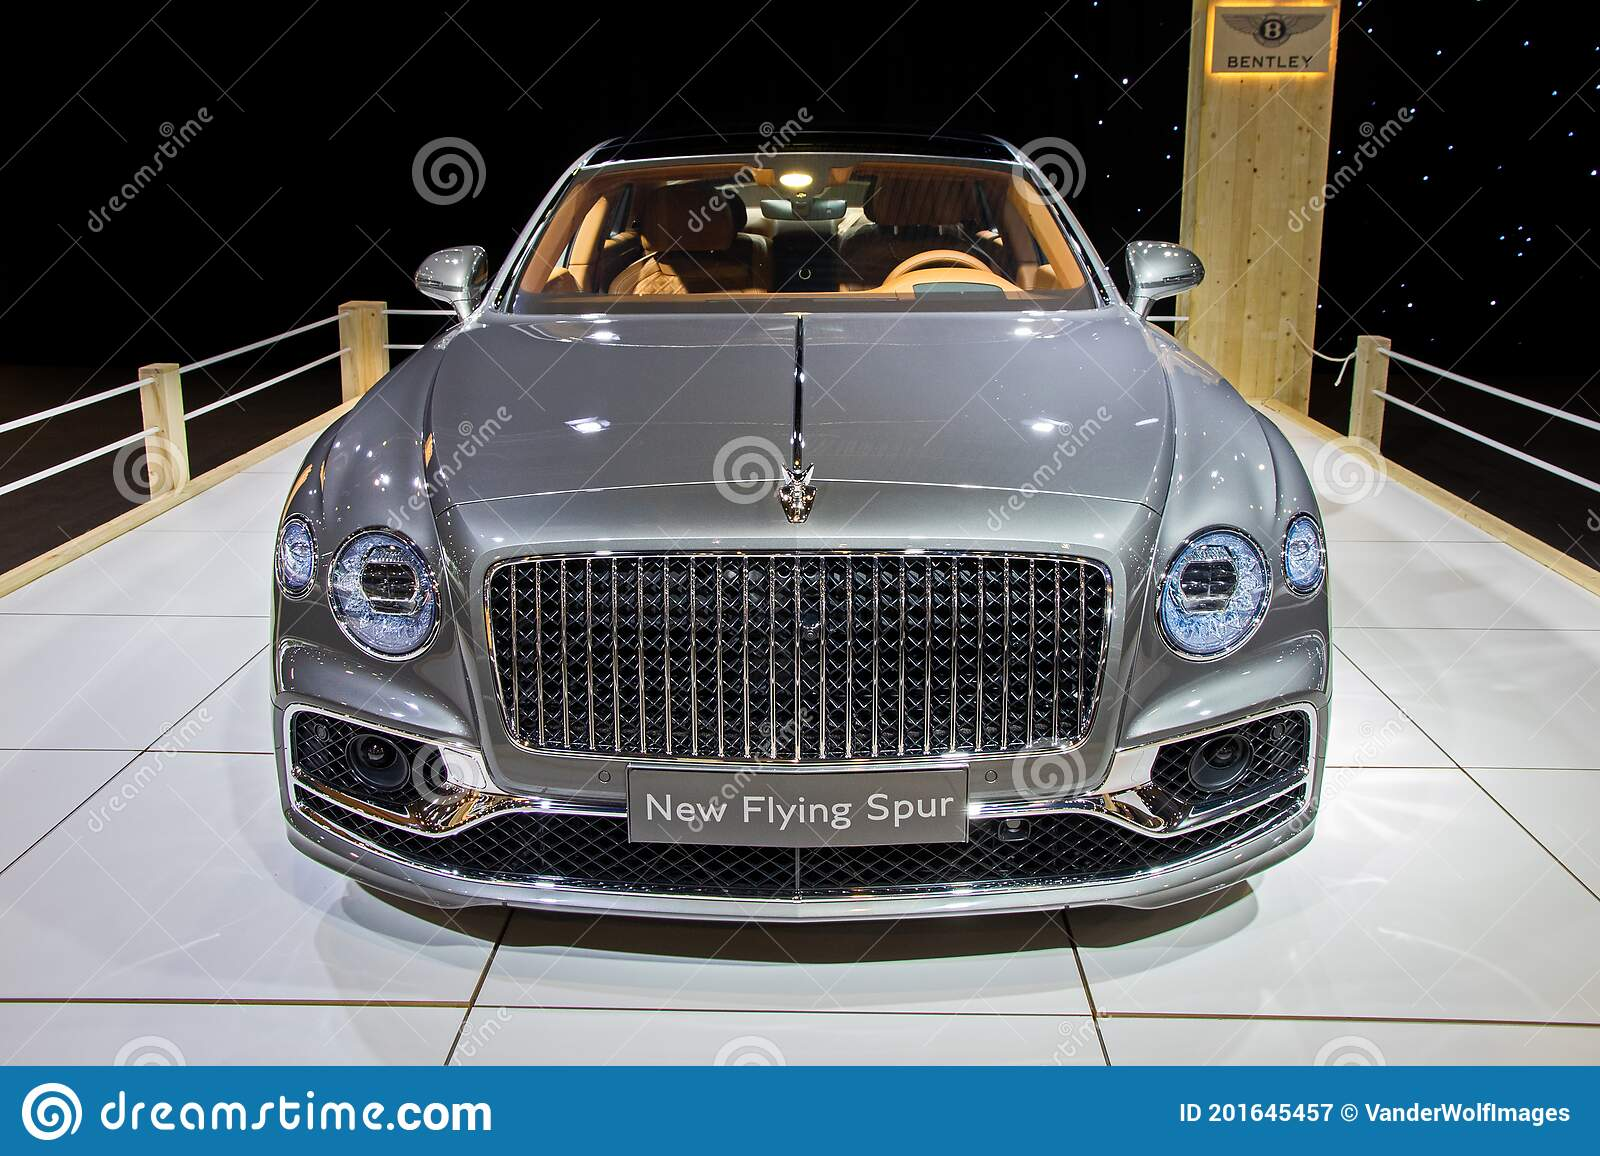 Bentley Flying Spur Luxury Car Showcased At The Autosalon 2020 Motor Show Brussels Belgium January 9 2020 Editorial Photography Image Of Showroom Bentley 201645457